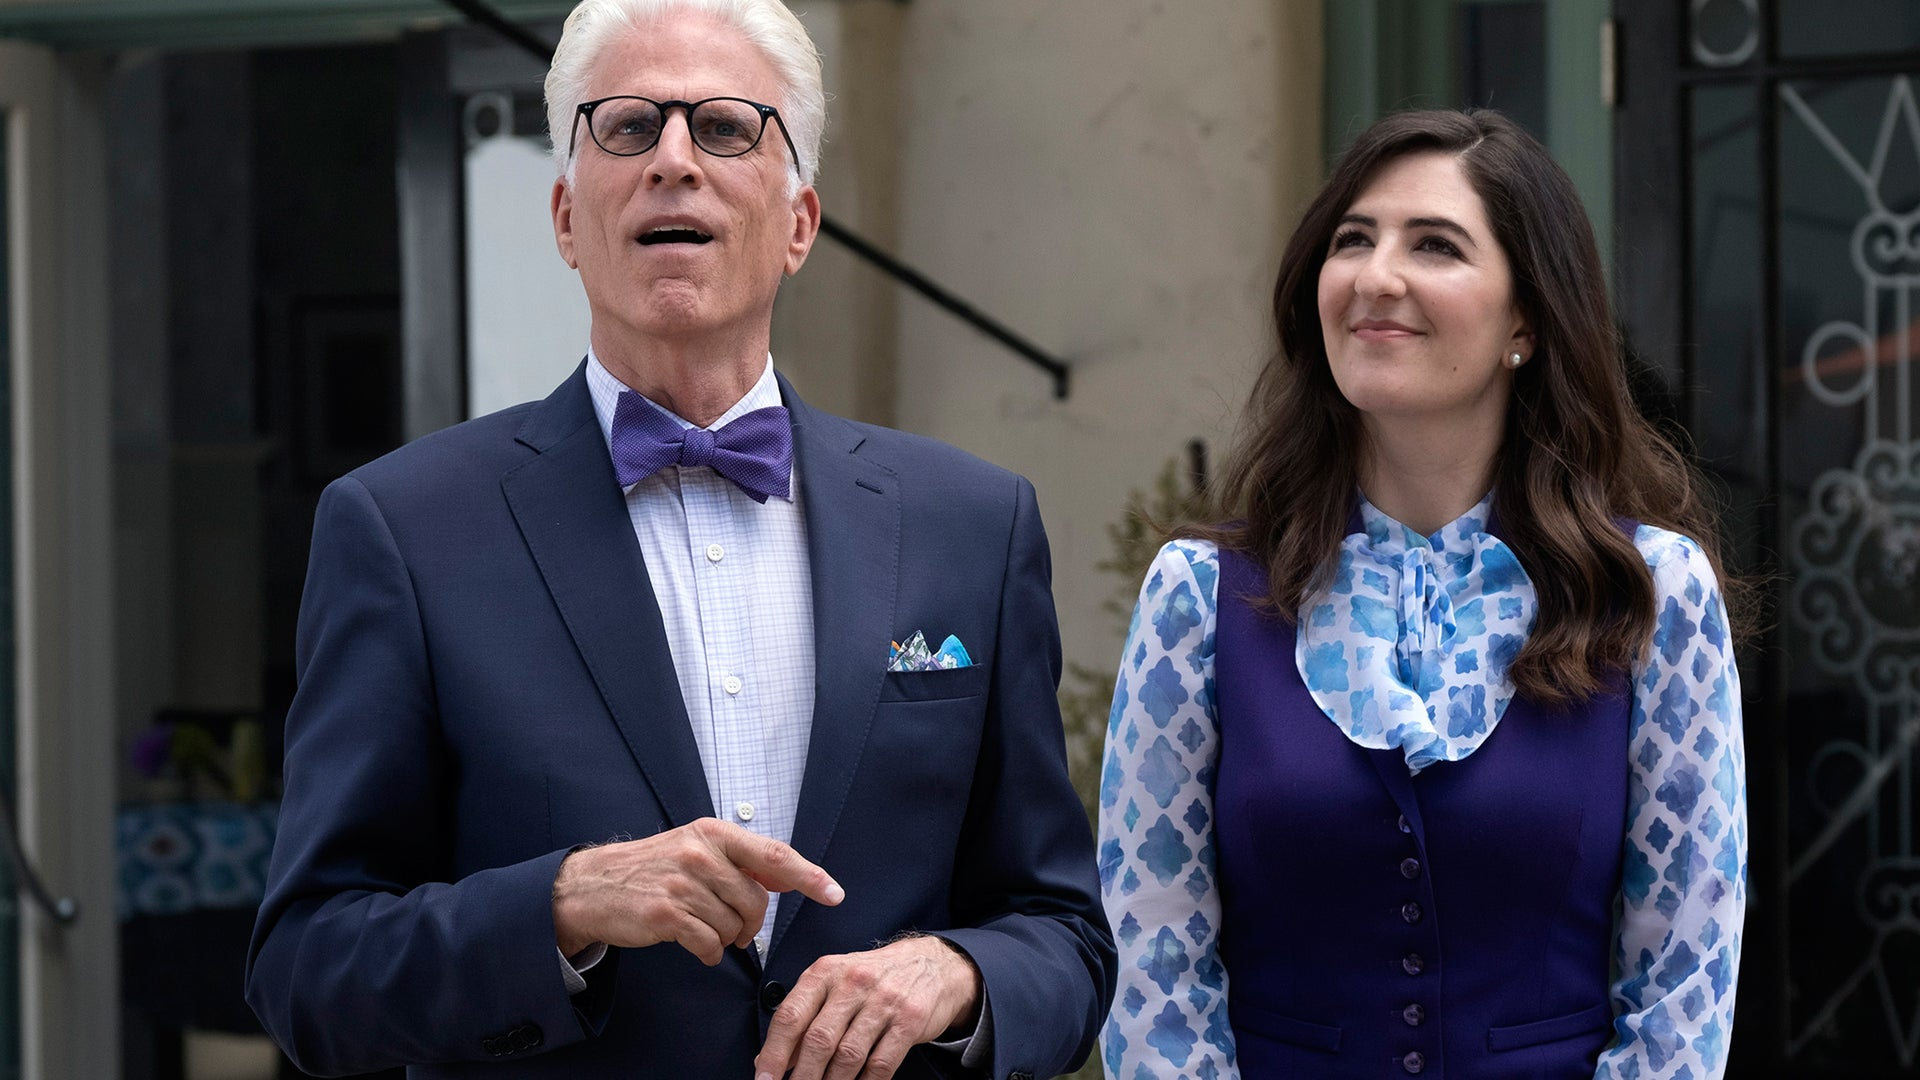 Ted Danson, D'Arcy Carden; The Good Place